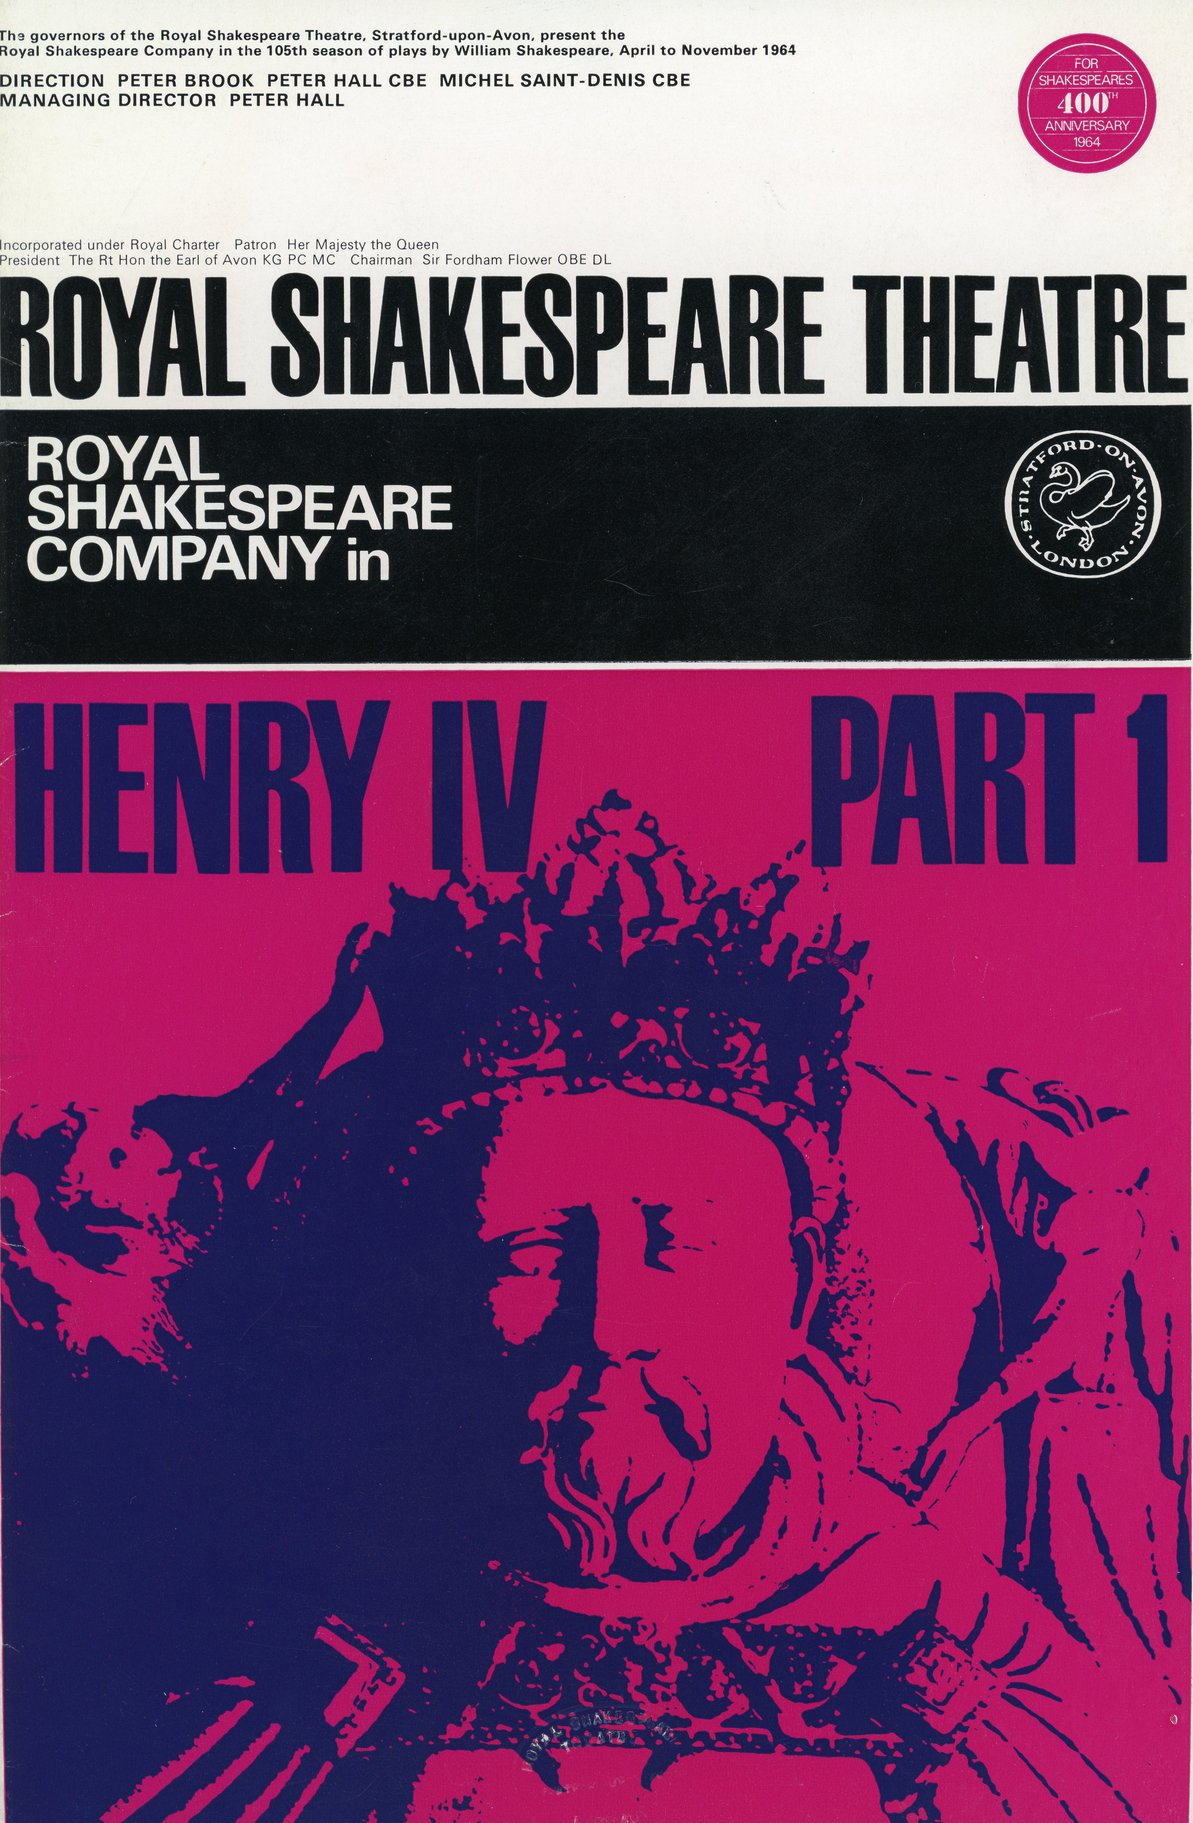 henry iv part 1 essays From a general summary to chapter summaries to explanations of famous quotes, the sparknotes henry iv, part 1 study guide has everything you need to ace quizzes.